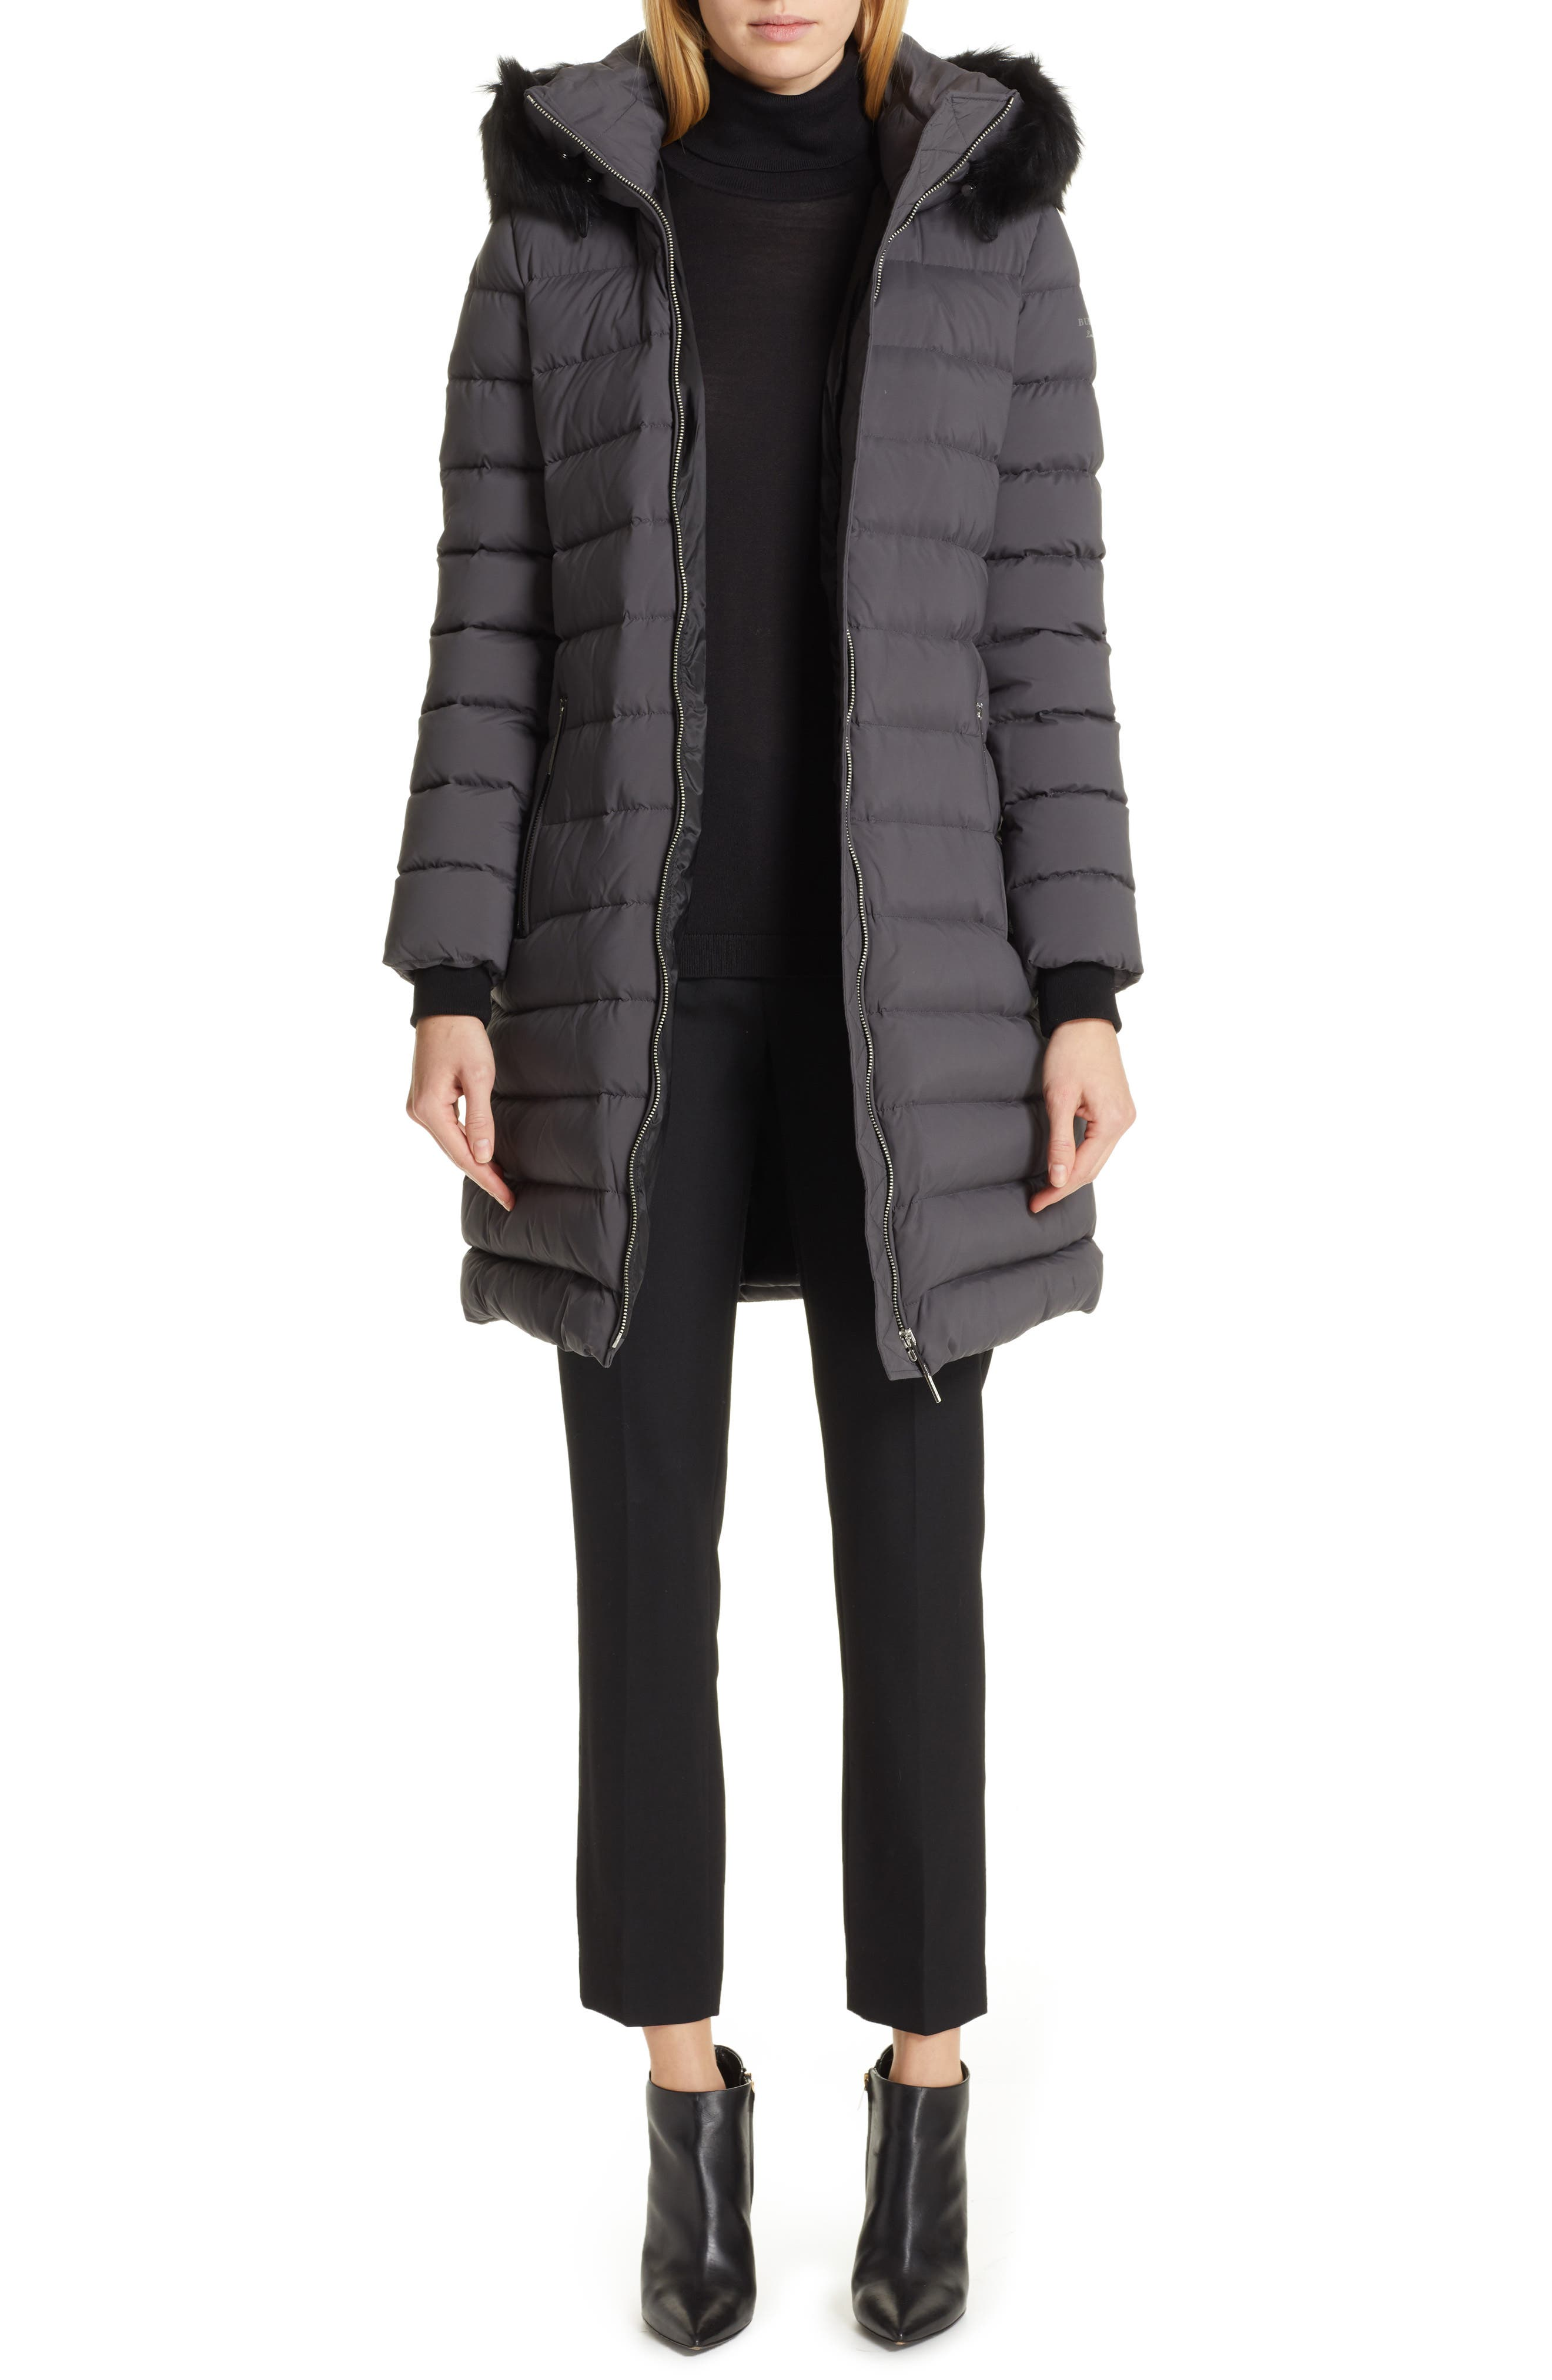 Limehouse Quilted Down Puffer Coat with Removable Genuine Shearling Trim,                             Alternate thumbnail 8, color,                             MID GREY